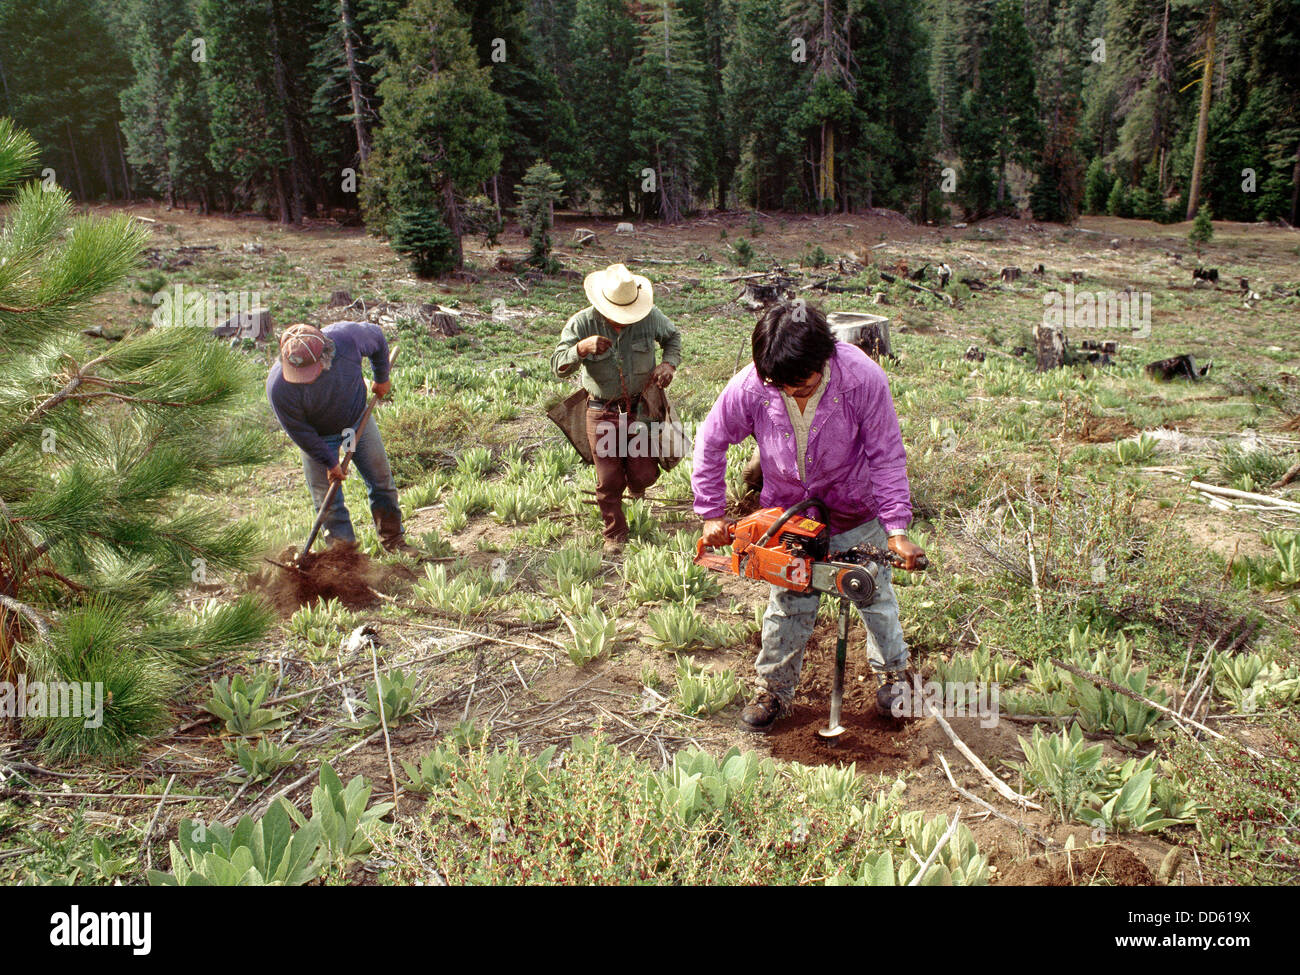 Reforestation, workers planting Ponderosa Pine seedlings. - Stock Image